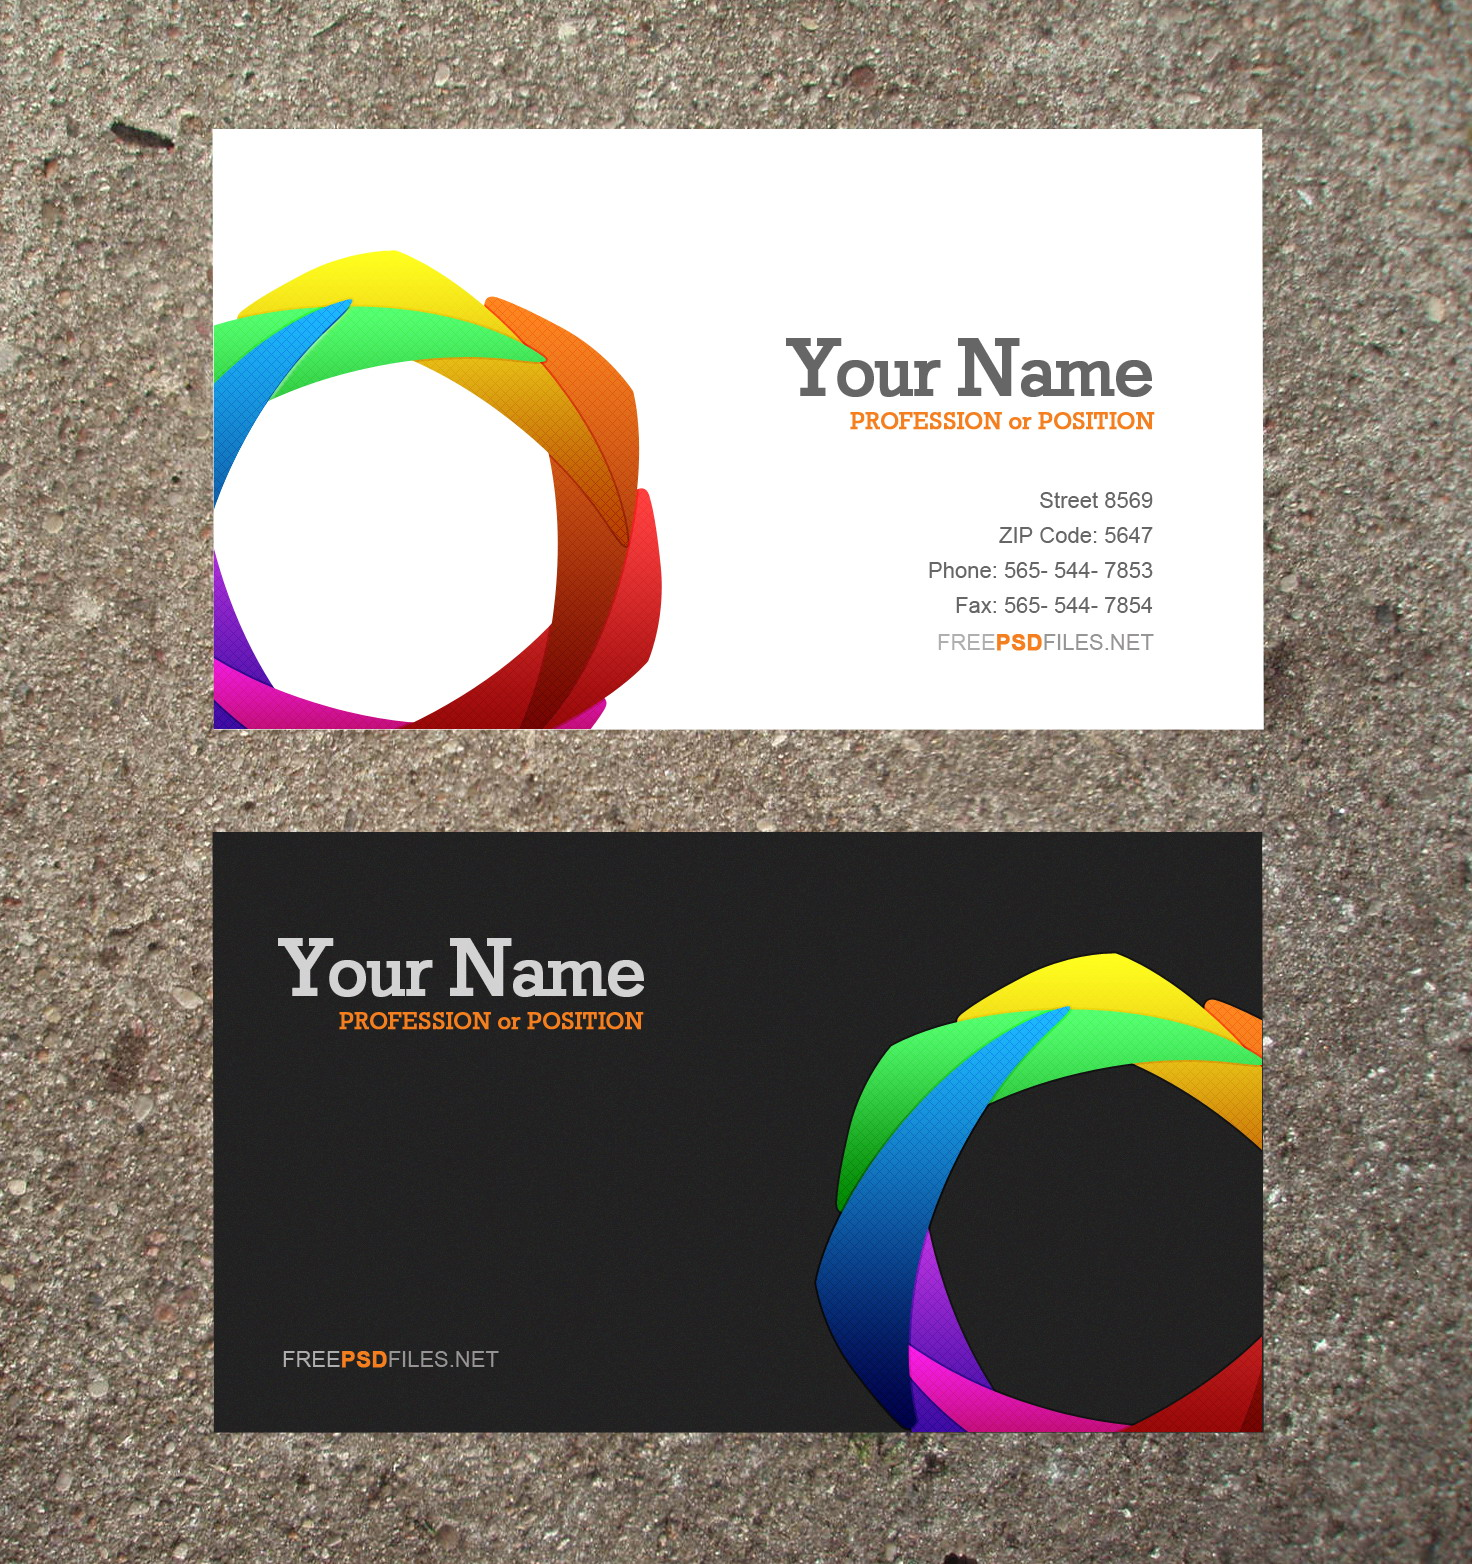 Agriculture Business Card Template Jeppefmtk - Business card templates designs